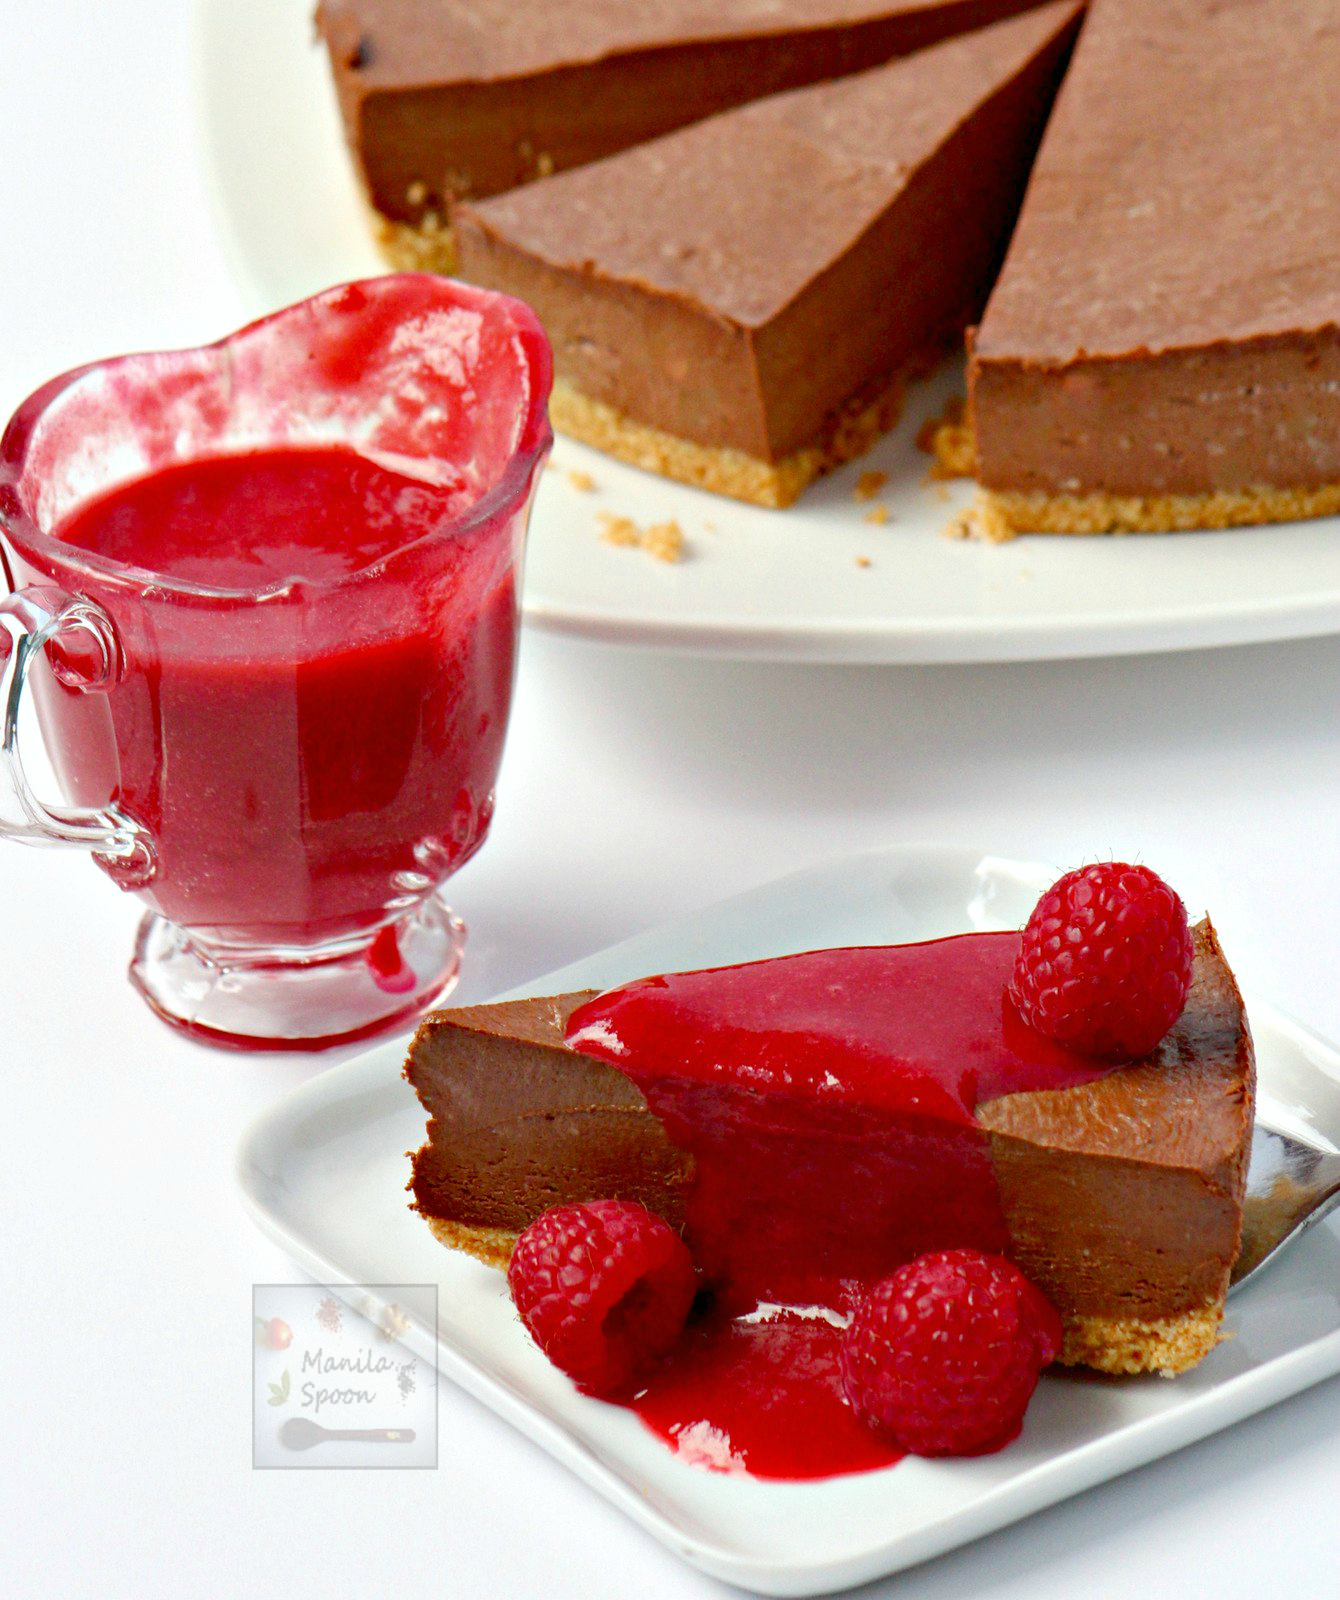 Use dark, milk or white chocolate to make this luscious Chocolate Cheesecake! Just 30 minutes to make and best of all no baking involved. The ultimate dessert for any chocolate lover! #chocolate #cheesecake #nobake #dessert #chocolatecheesecake